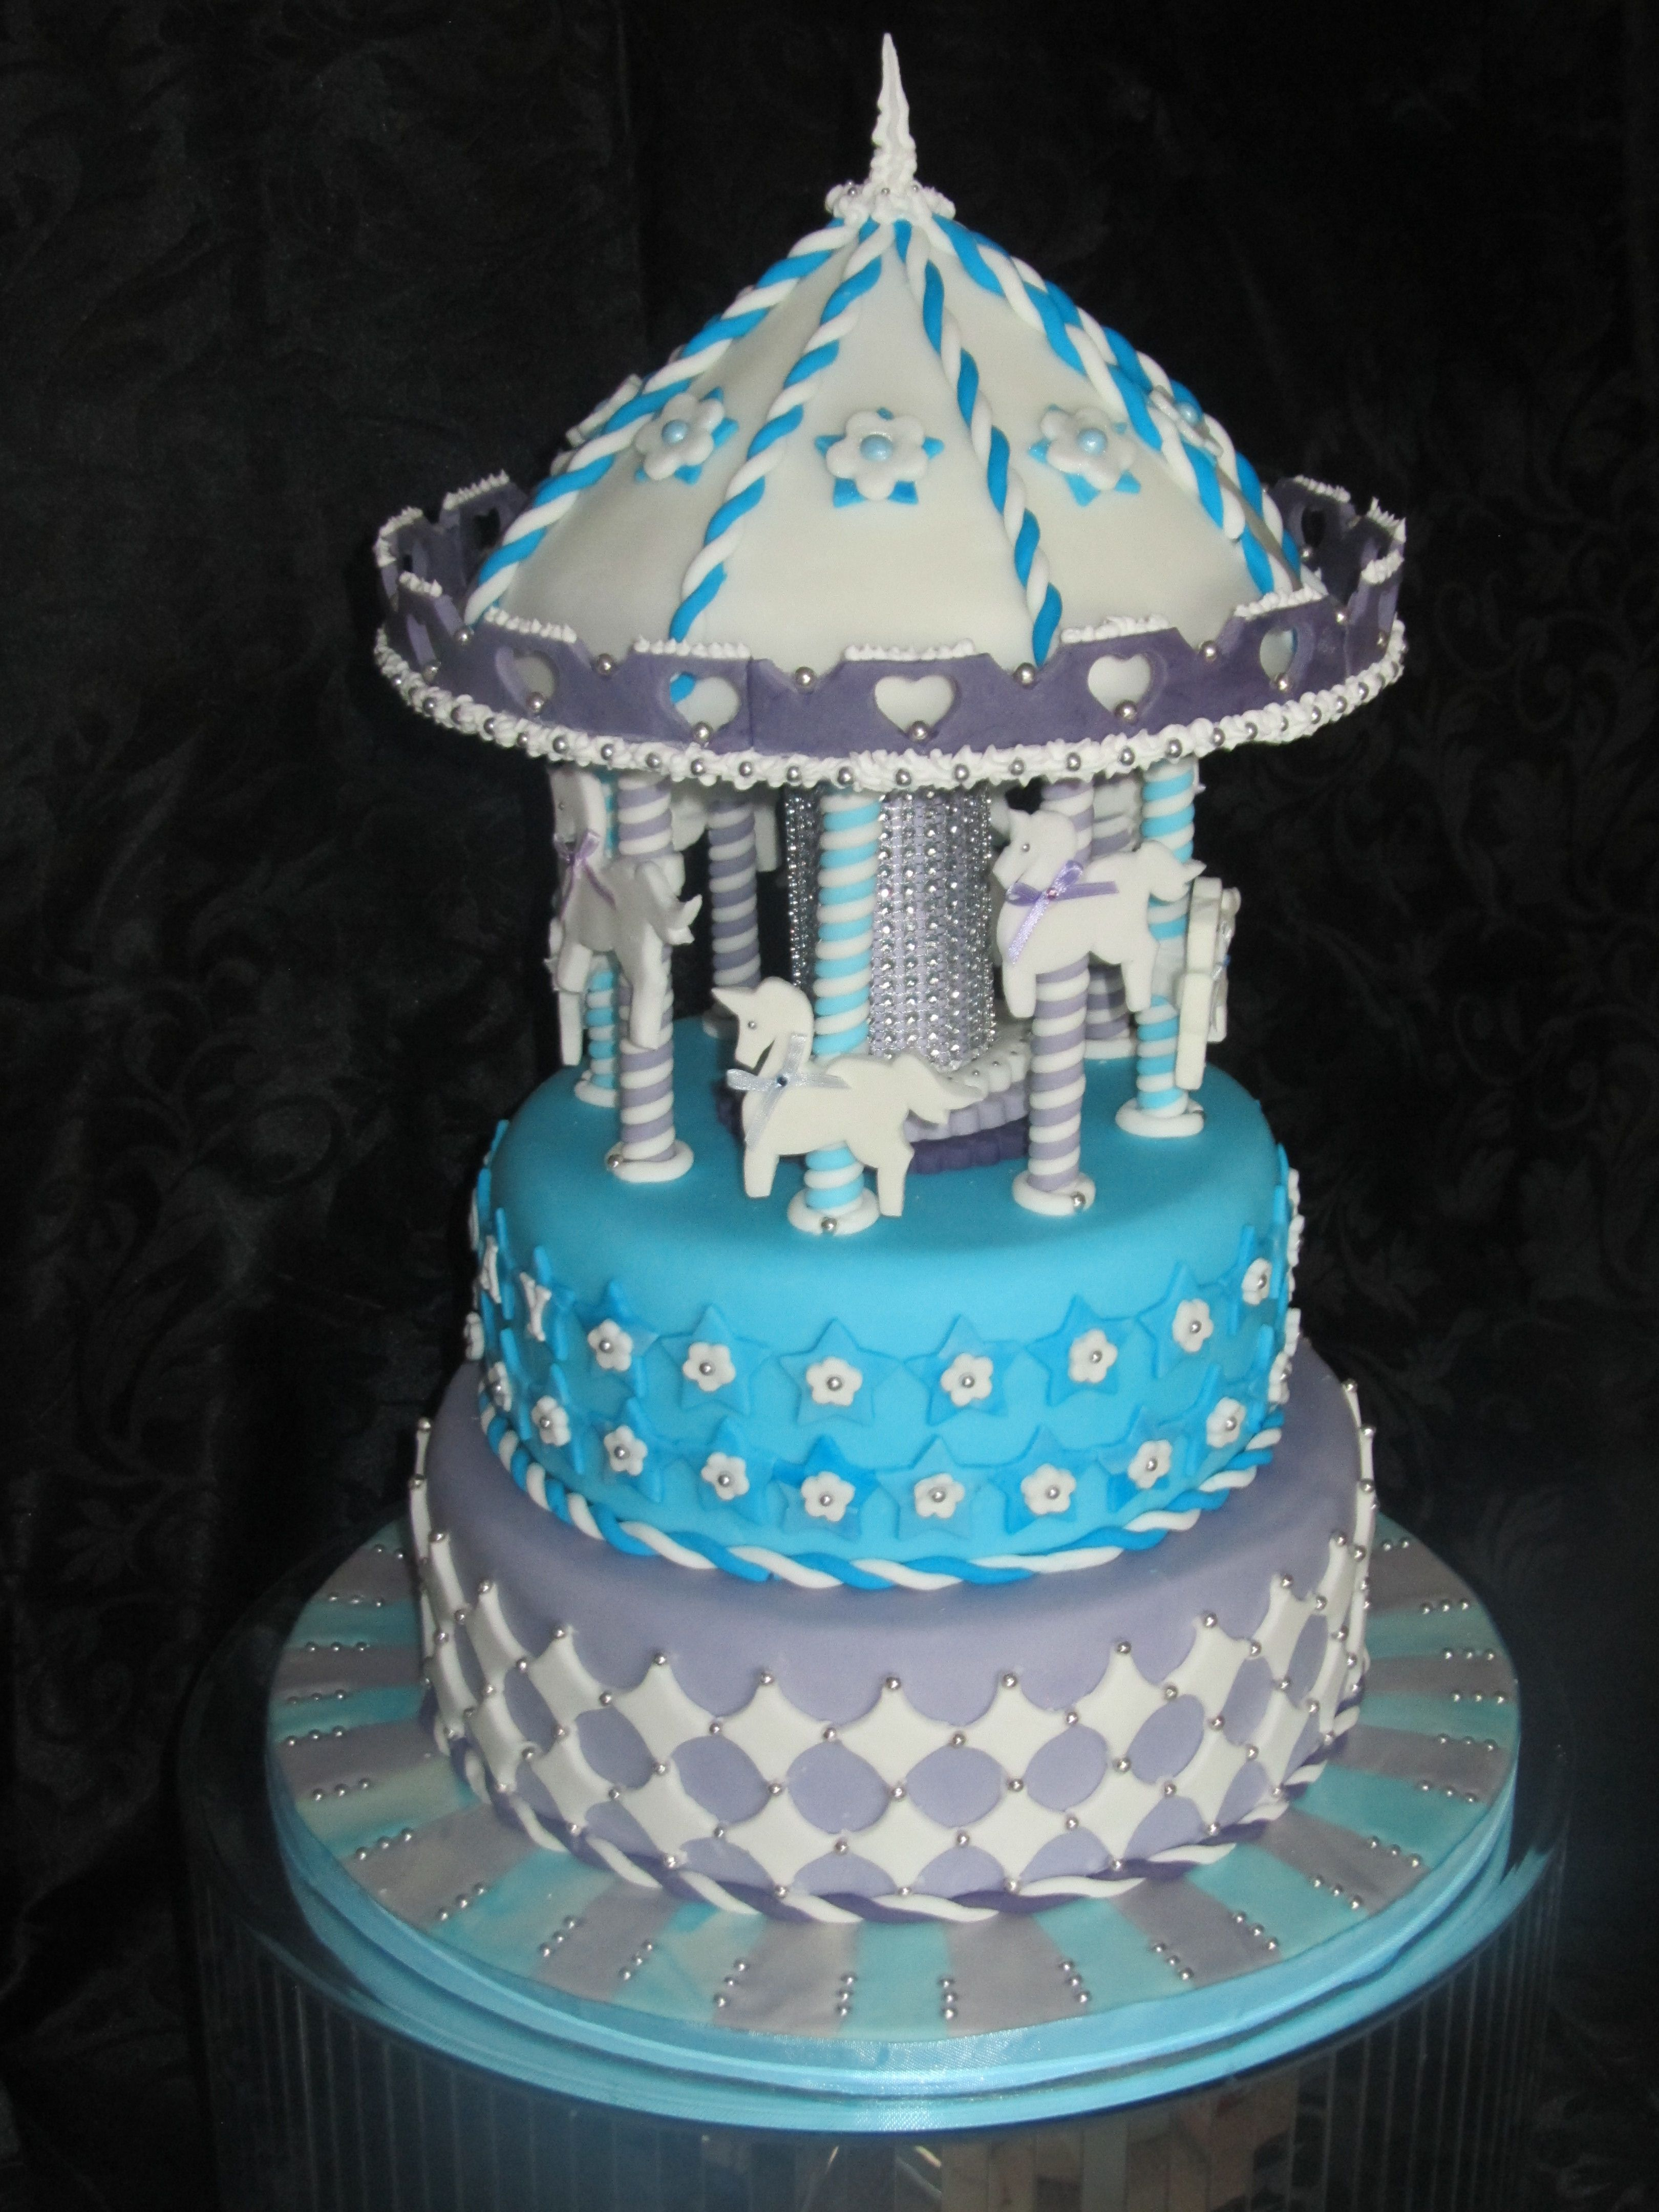 blue carousel cakecastle cakes, @cakes_castle 07764488868